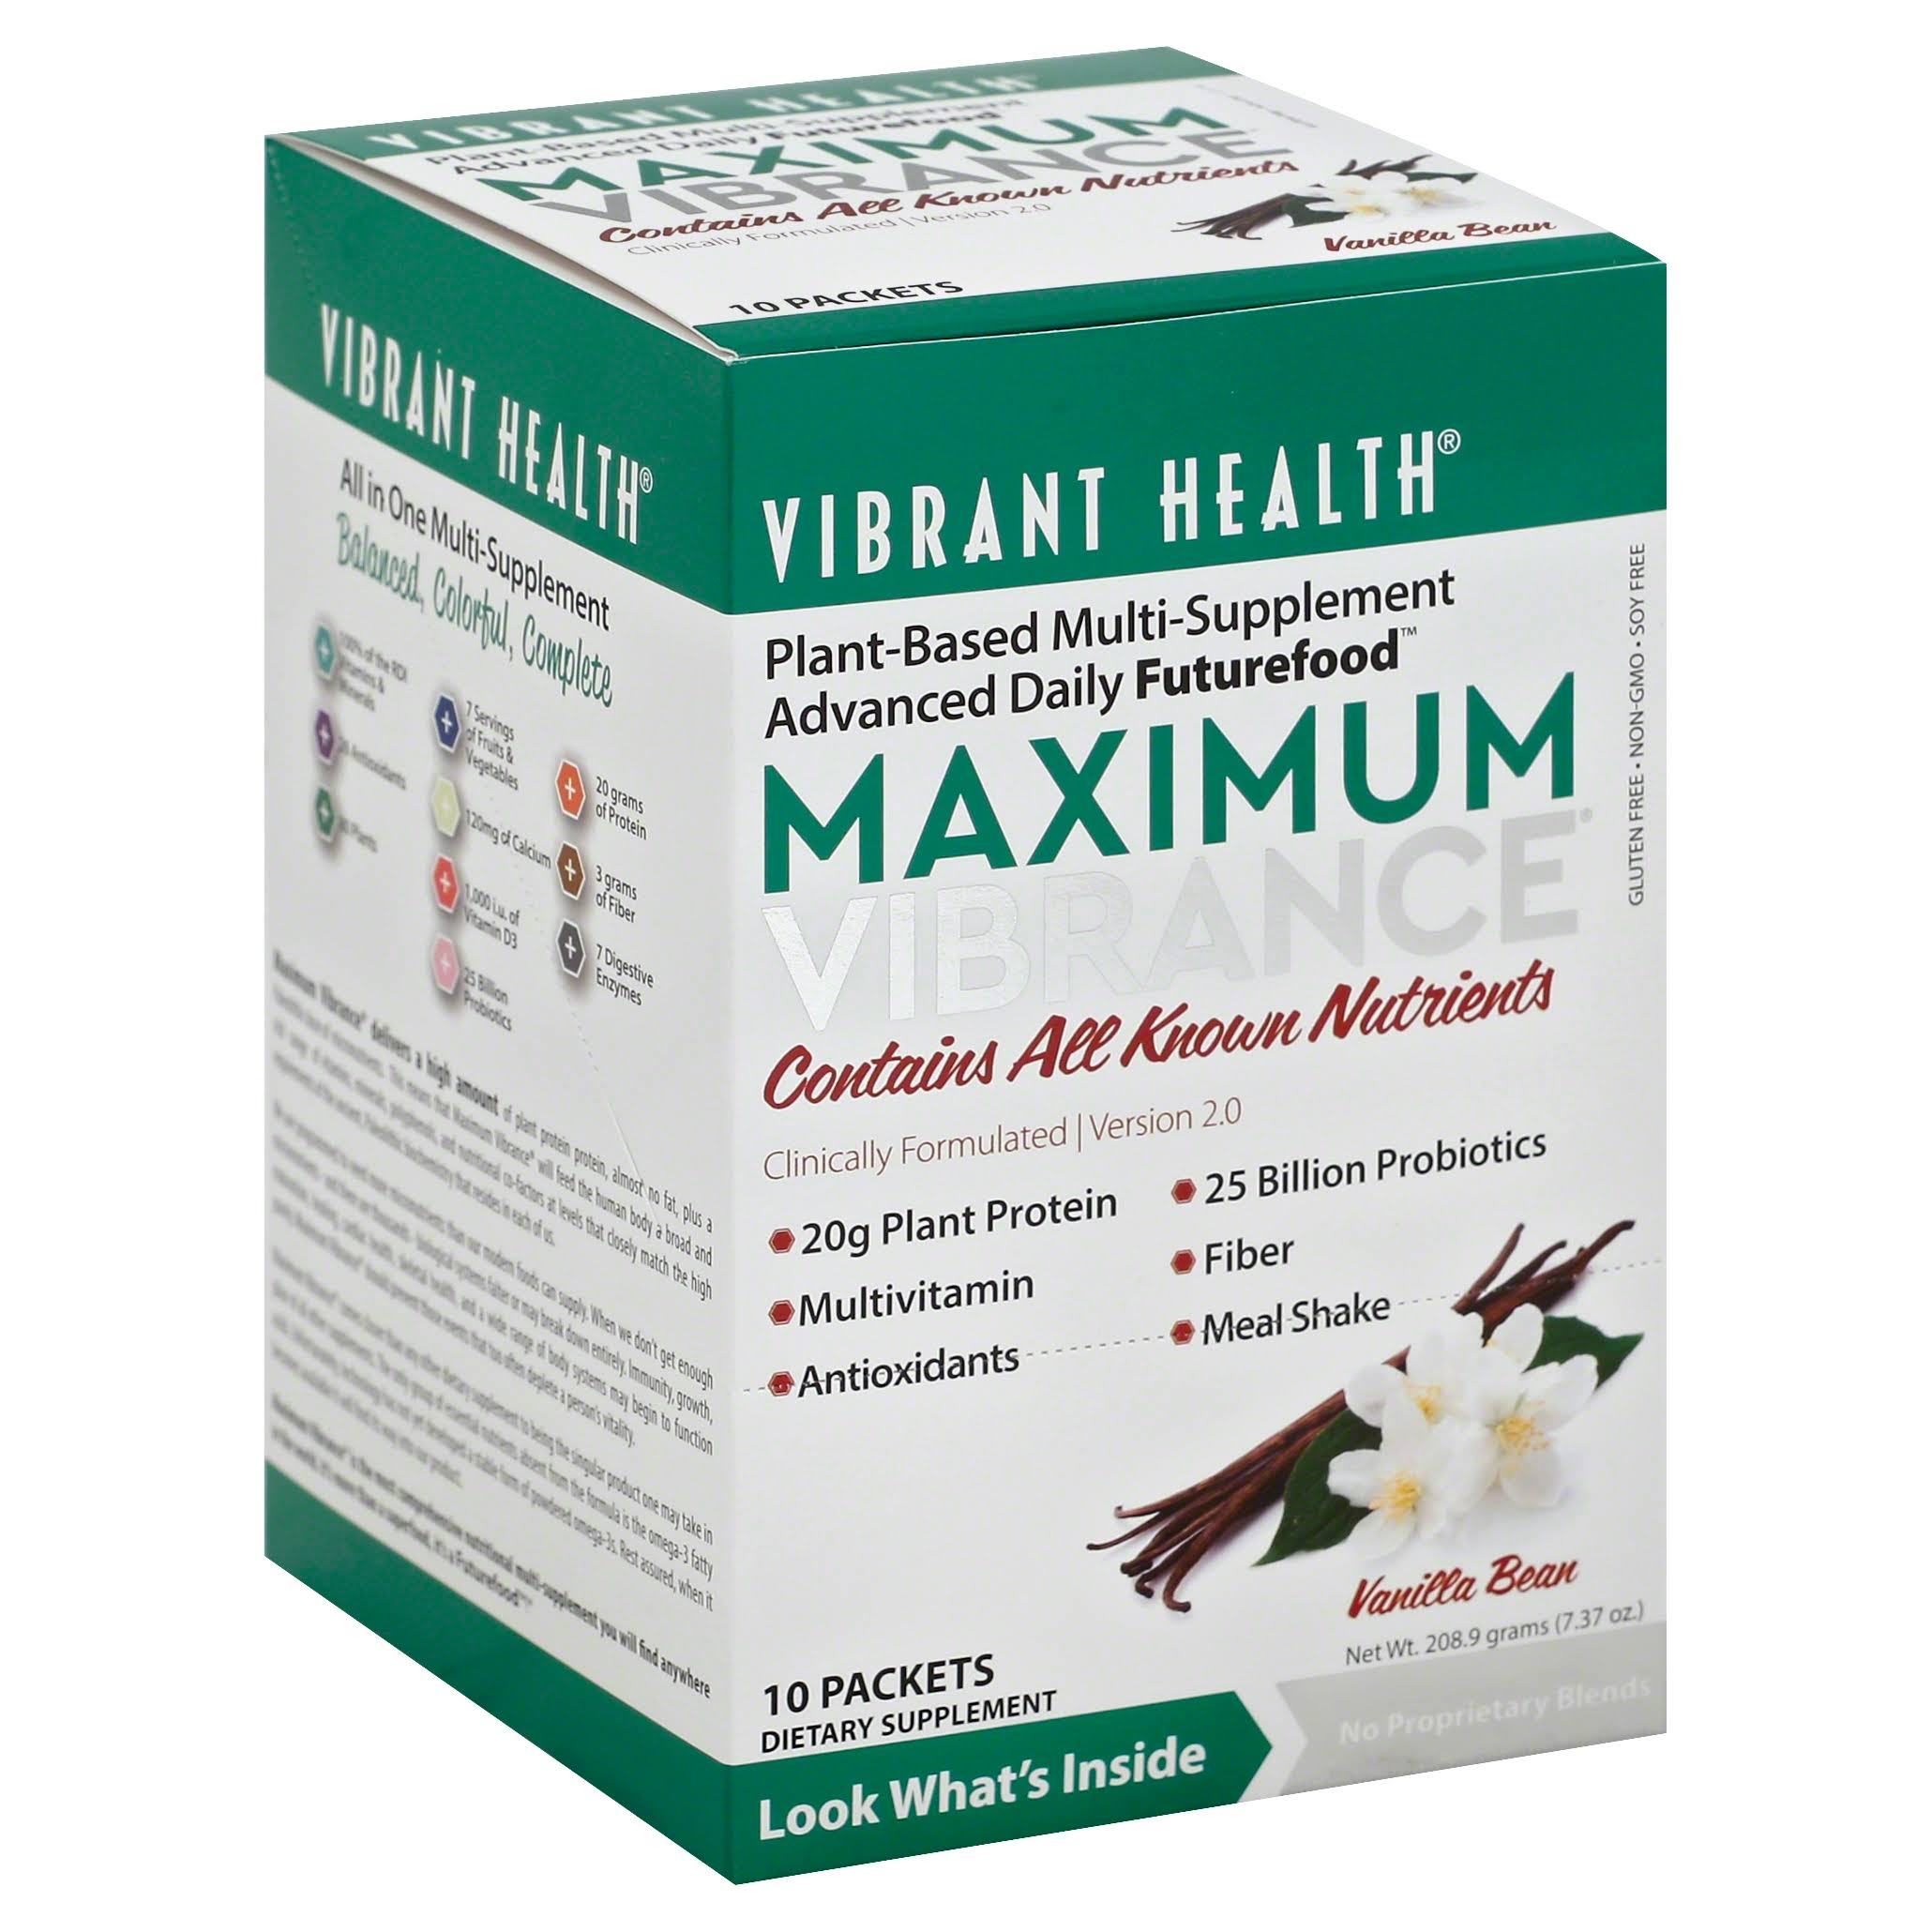 Vibrant Health Maximum Vibrance - 10 Packets